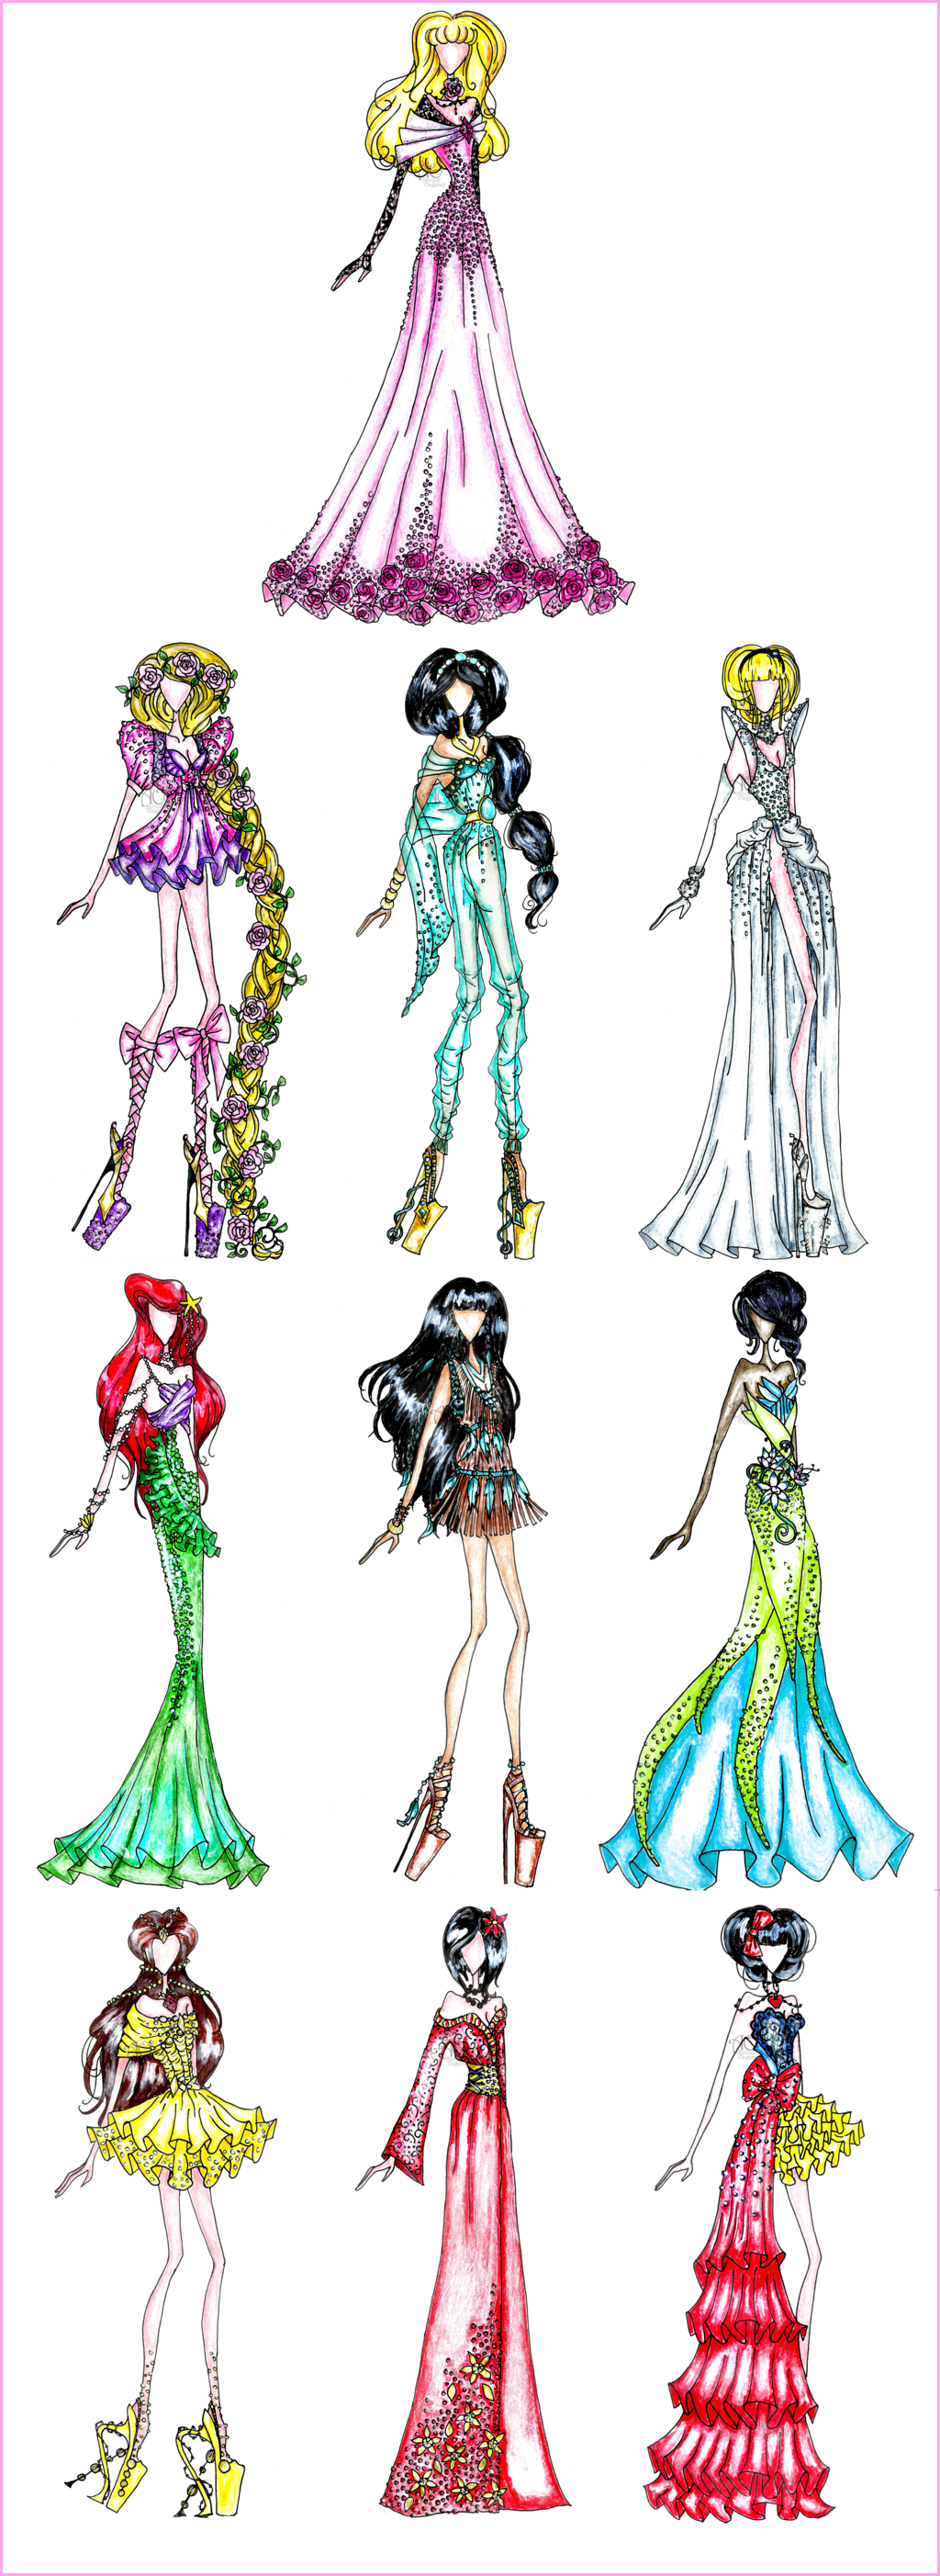 Disney princess fashion girl 86